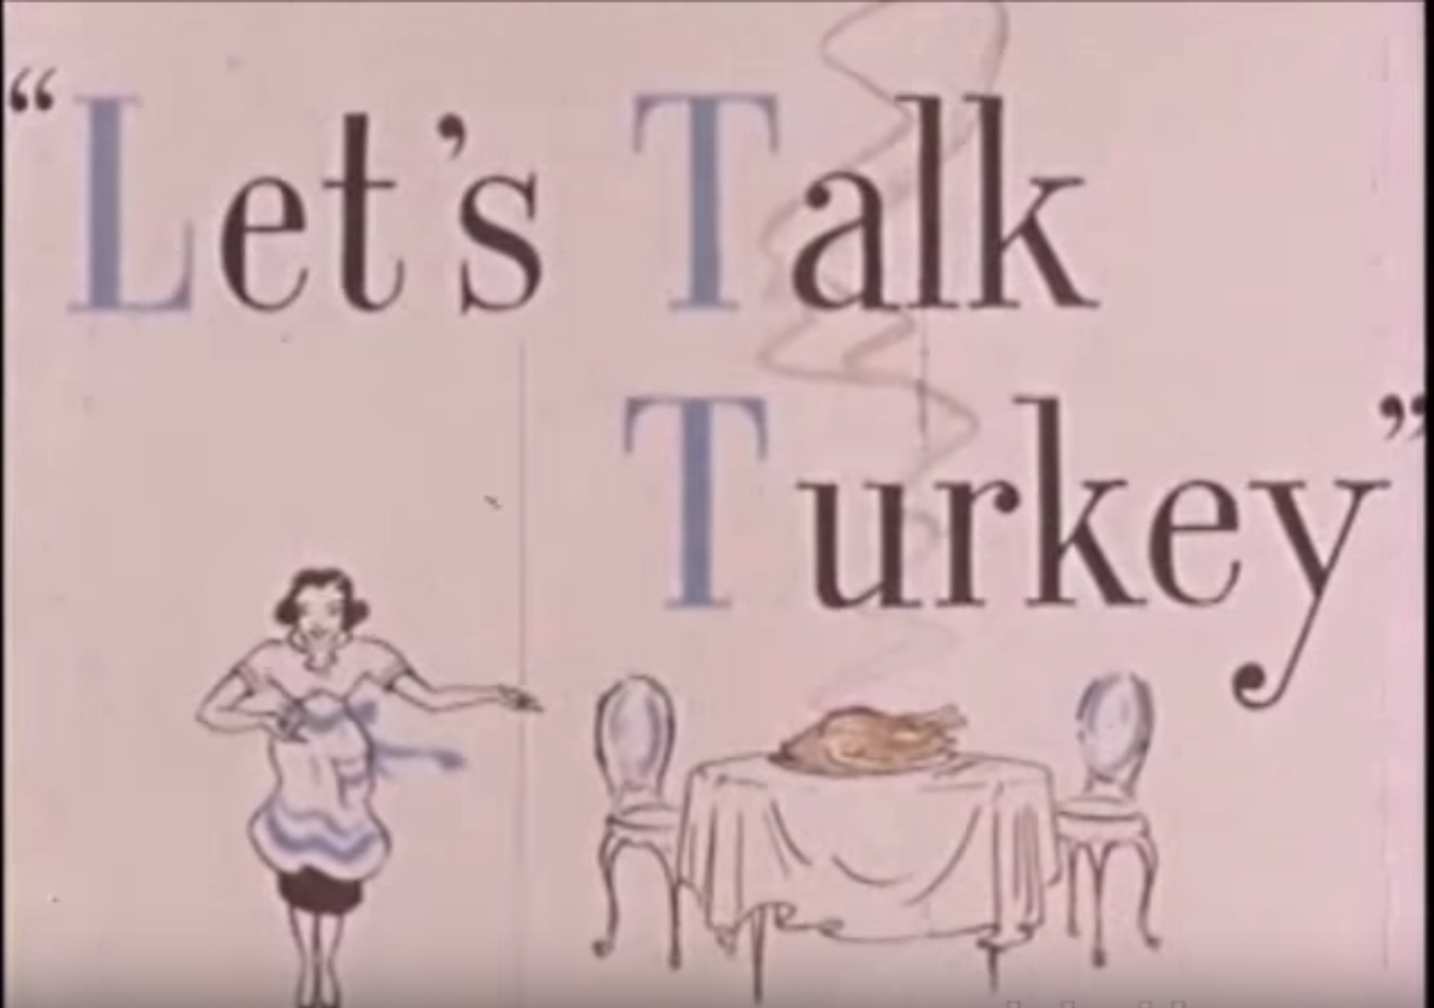 Let's Talk Turkey - 1955